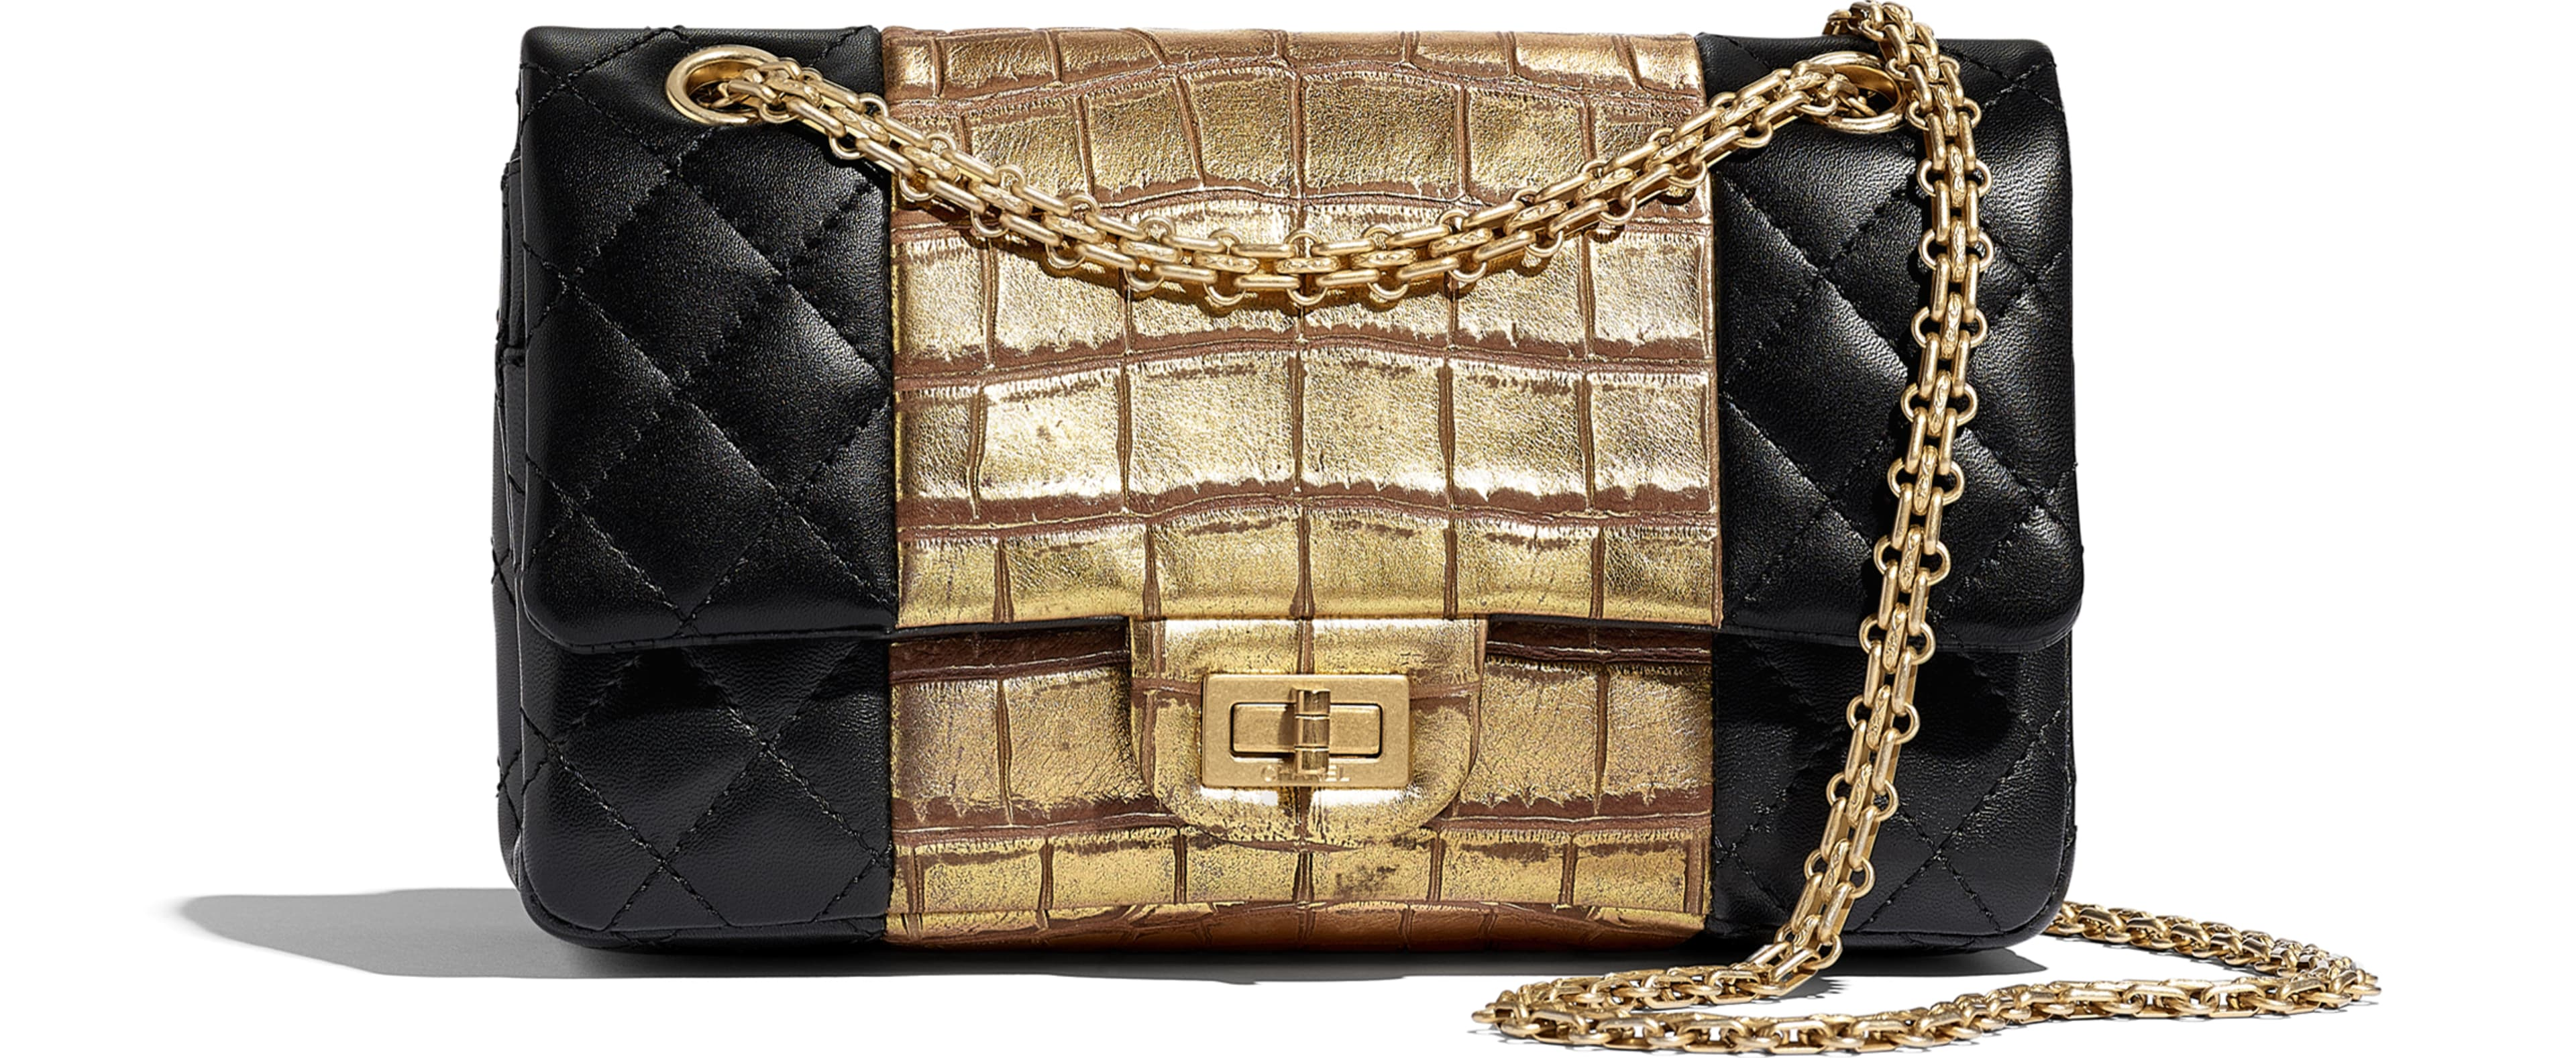 Lambskin, Crocodile Embossed Calfskin & Gold-Tone Metal Black & Gold